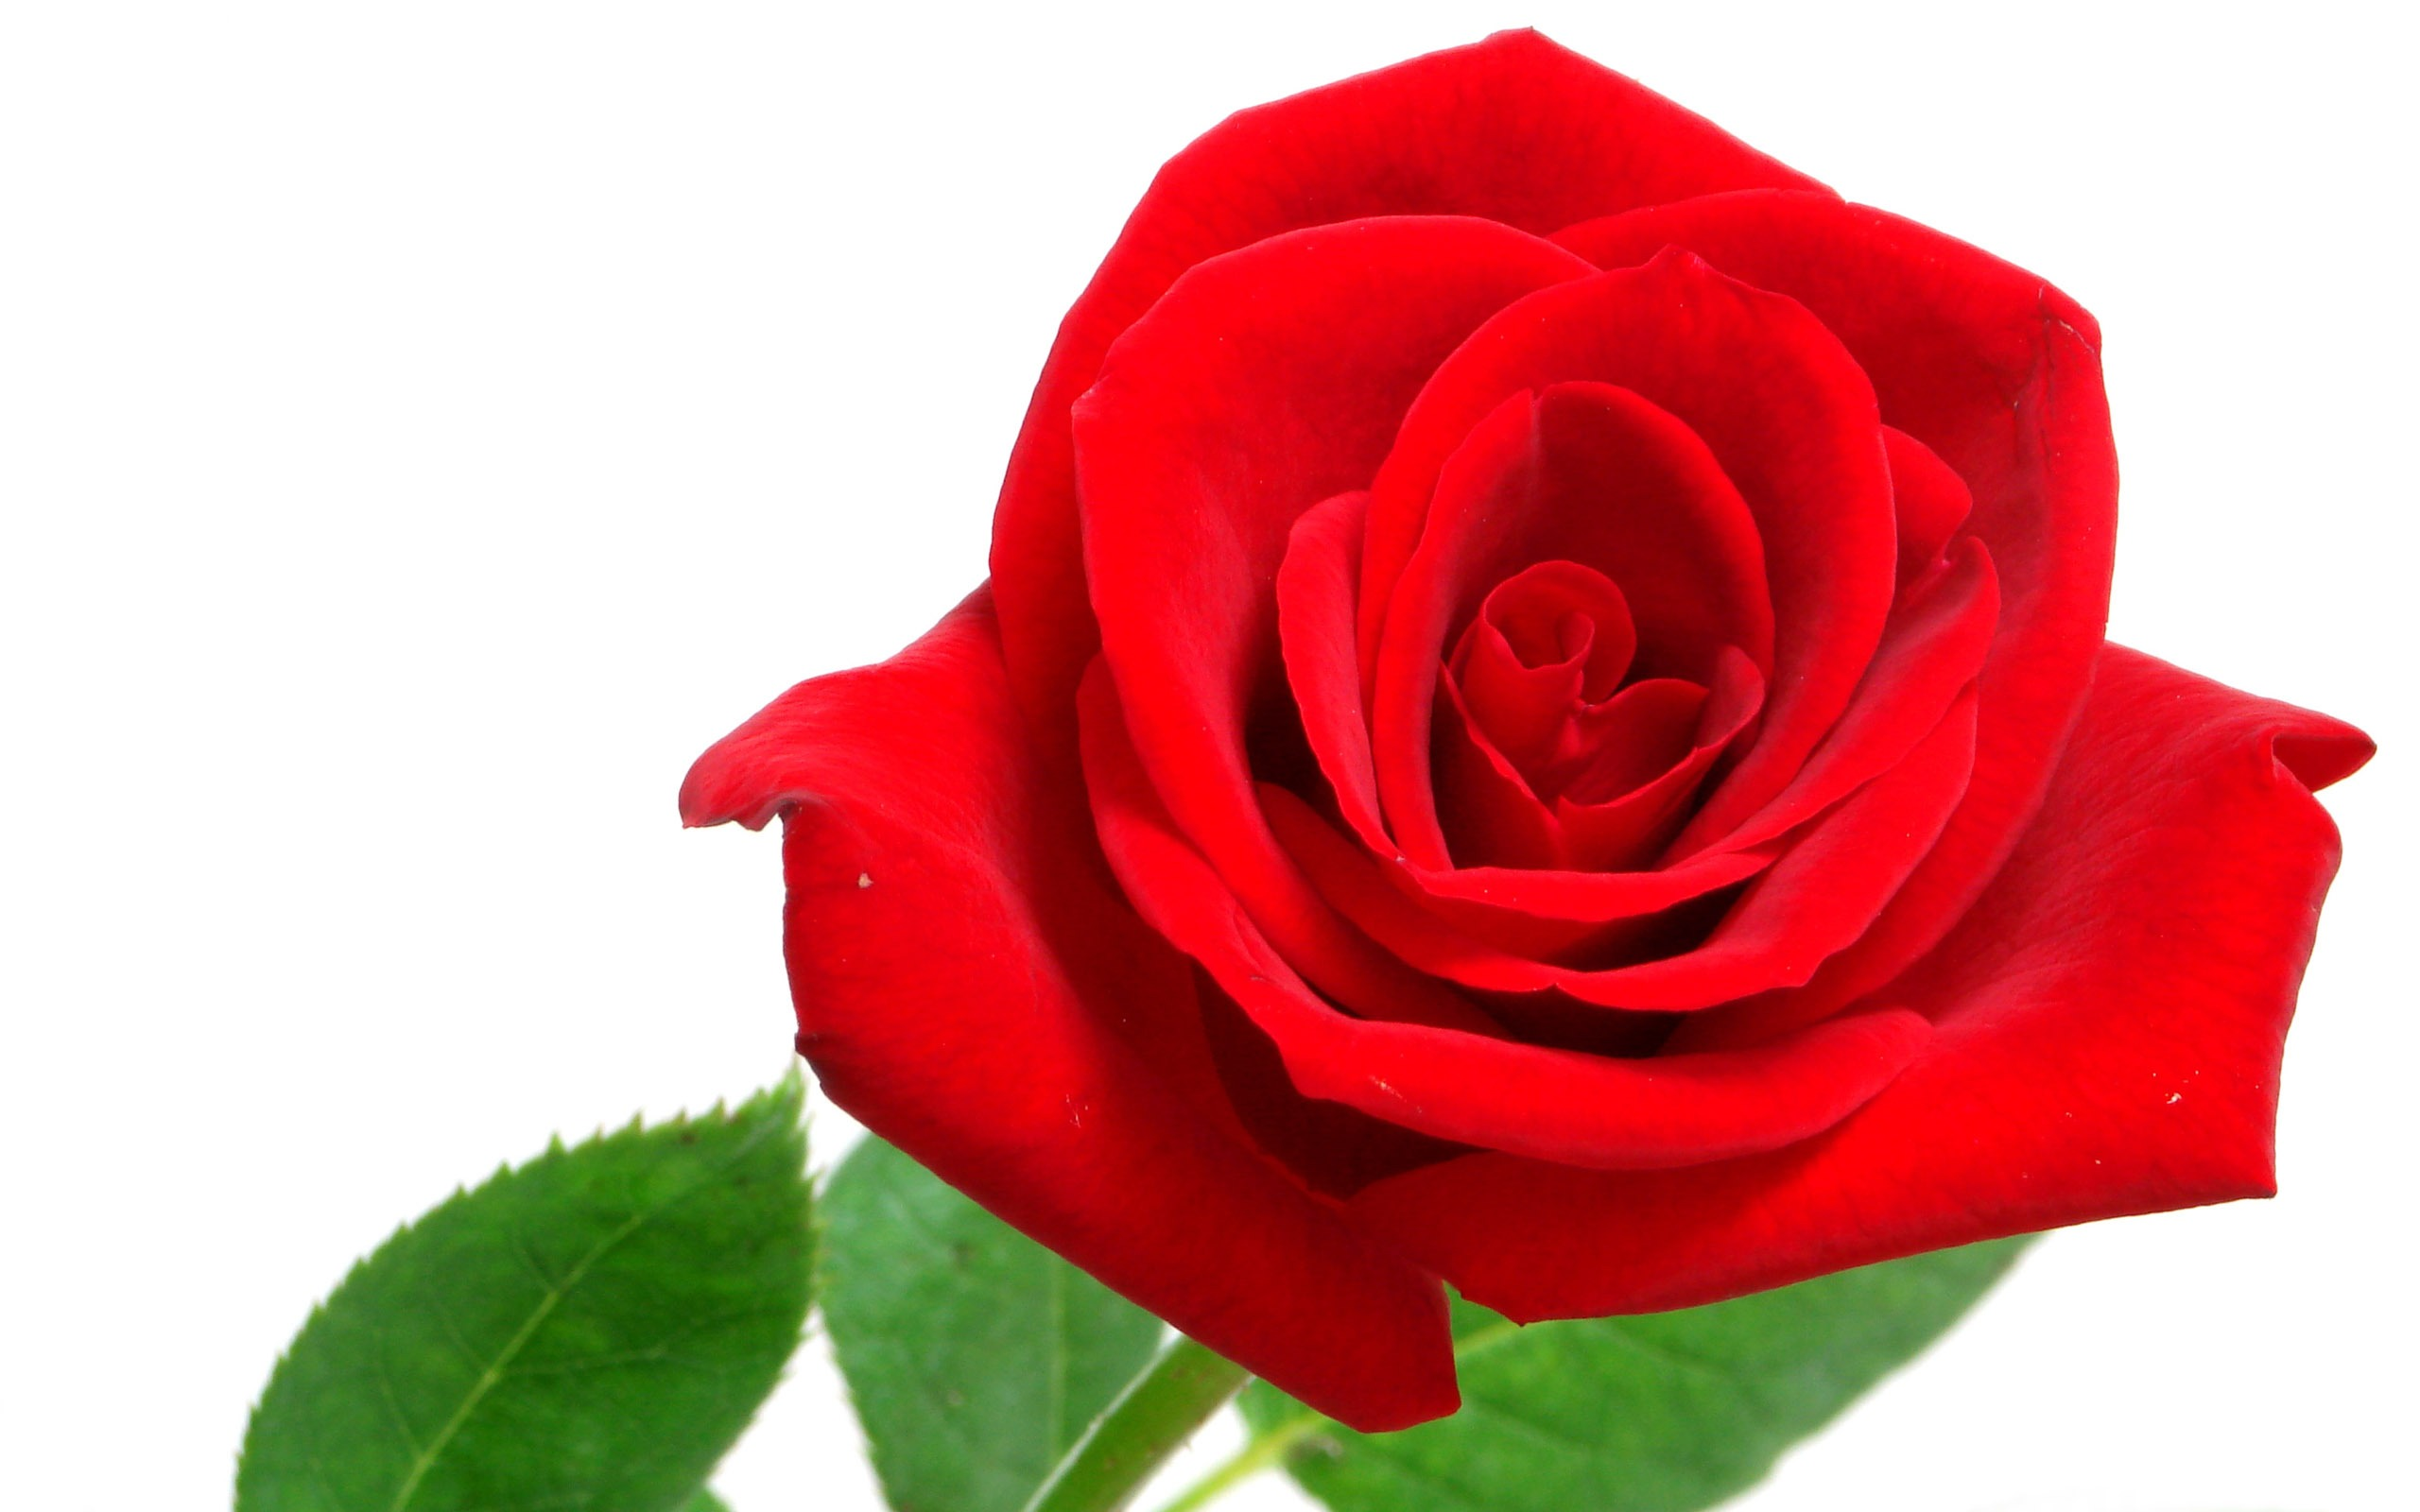 Large Rose Photo Wallpaper (6) #7 - 2560x1600